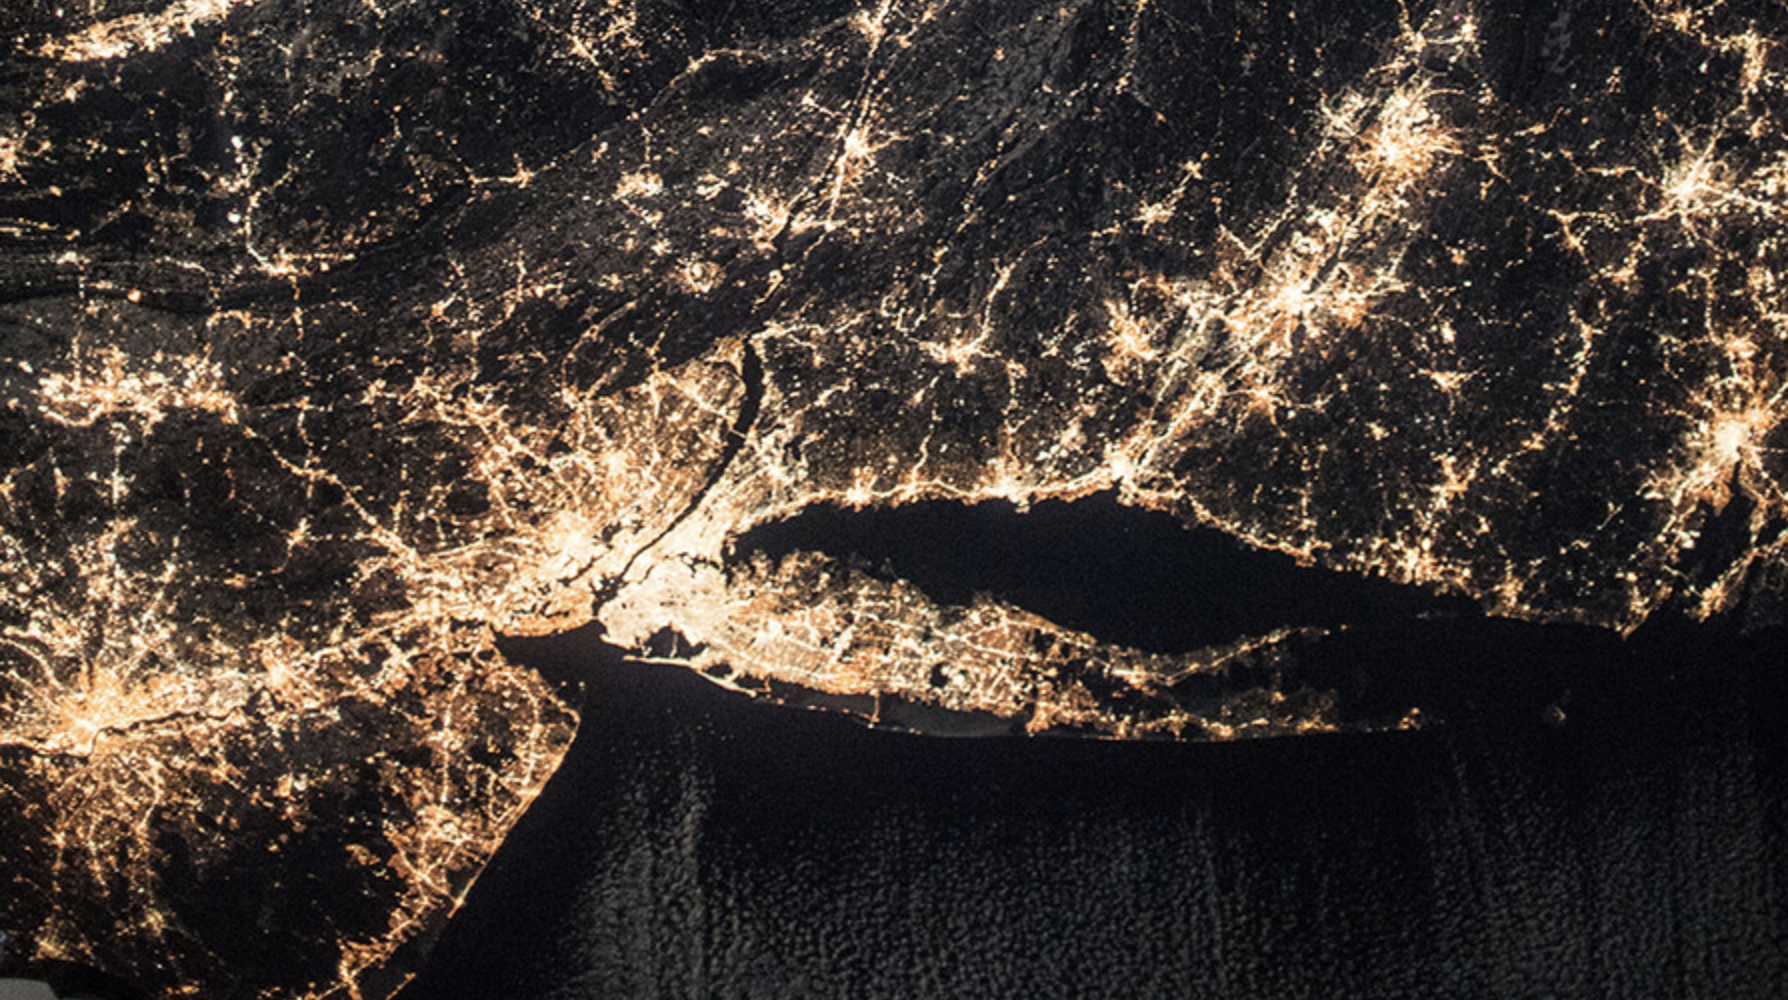 The well-lit coasts of New Jersey, New York and Connecticut are pictured in the wee hours of New Year's Day.